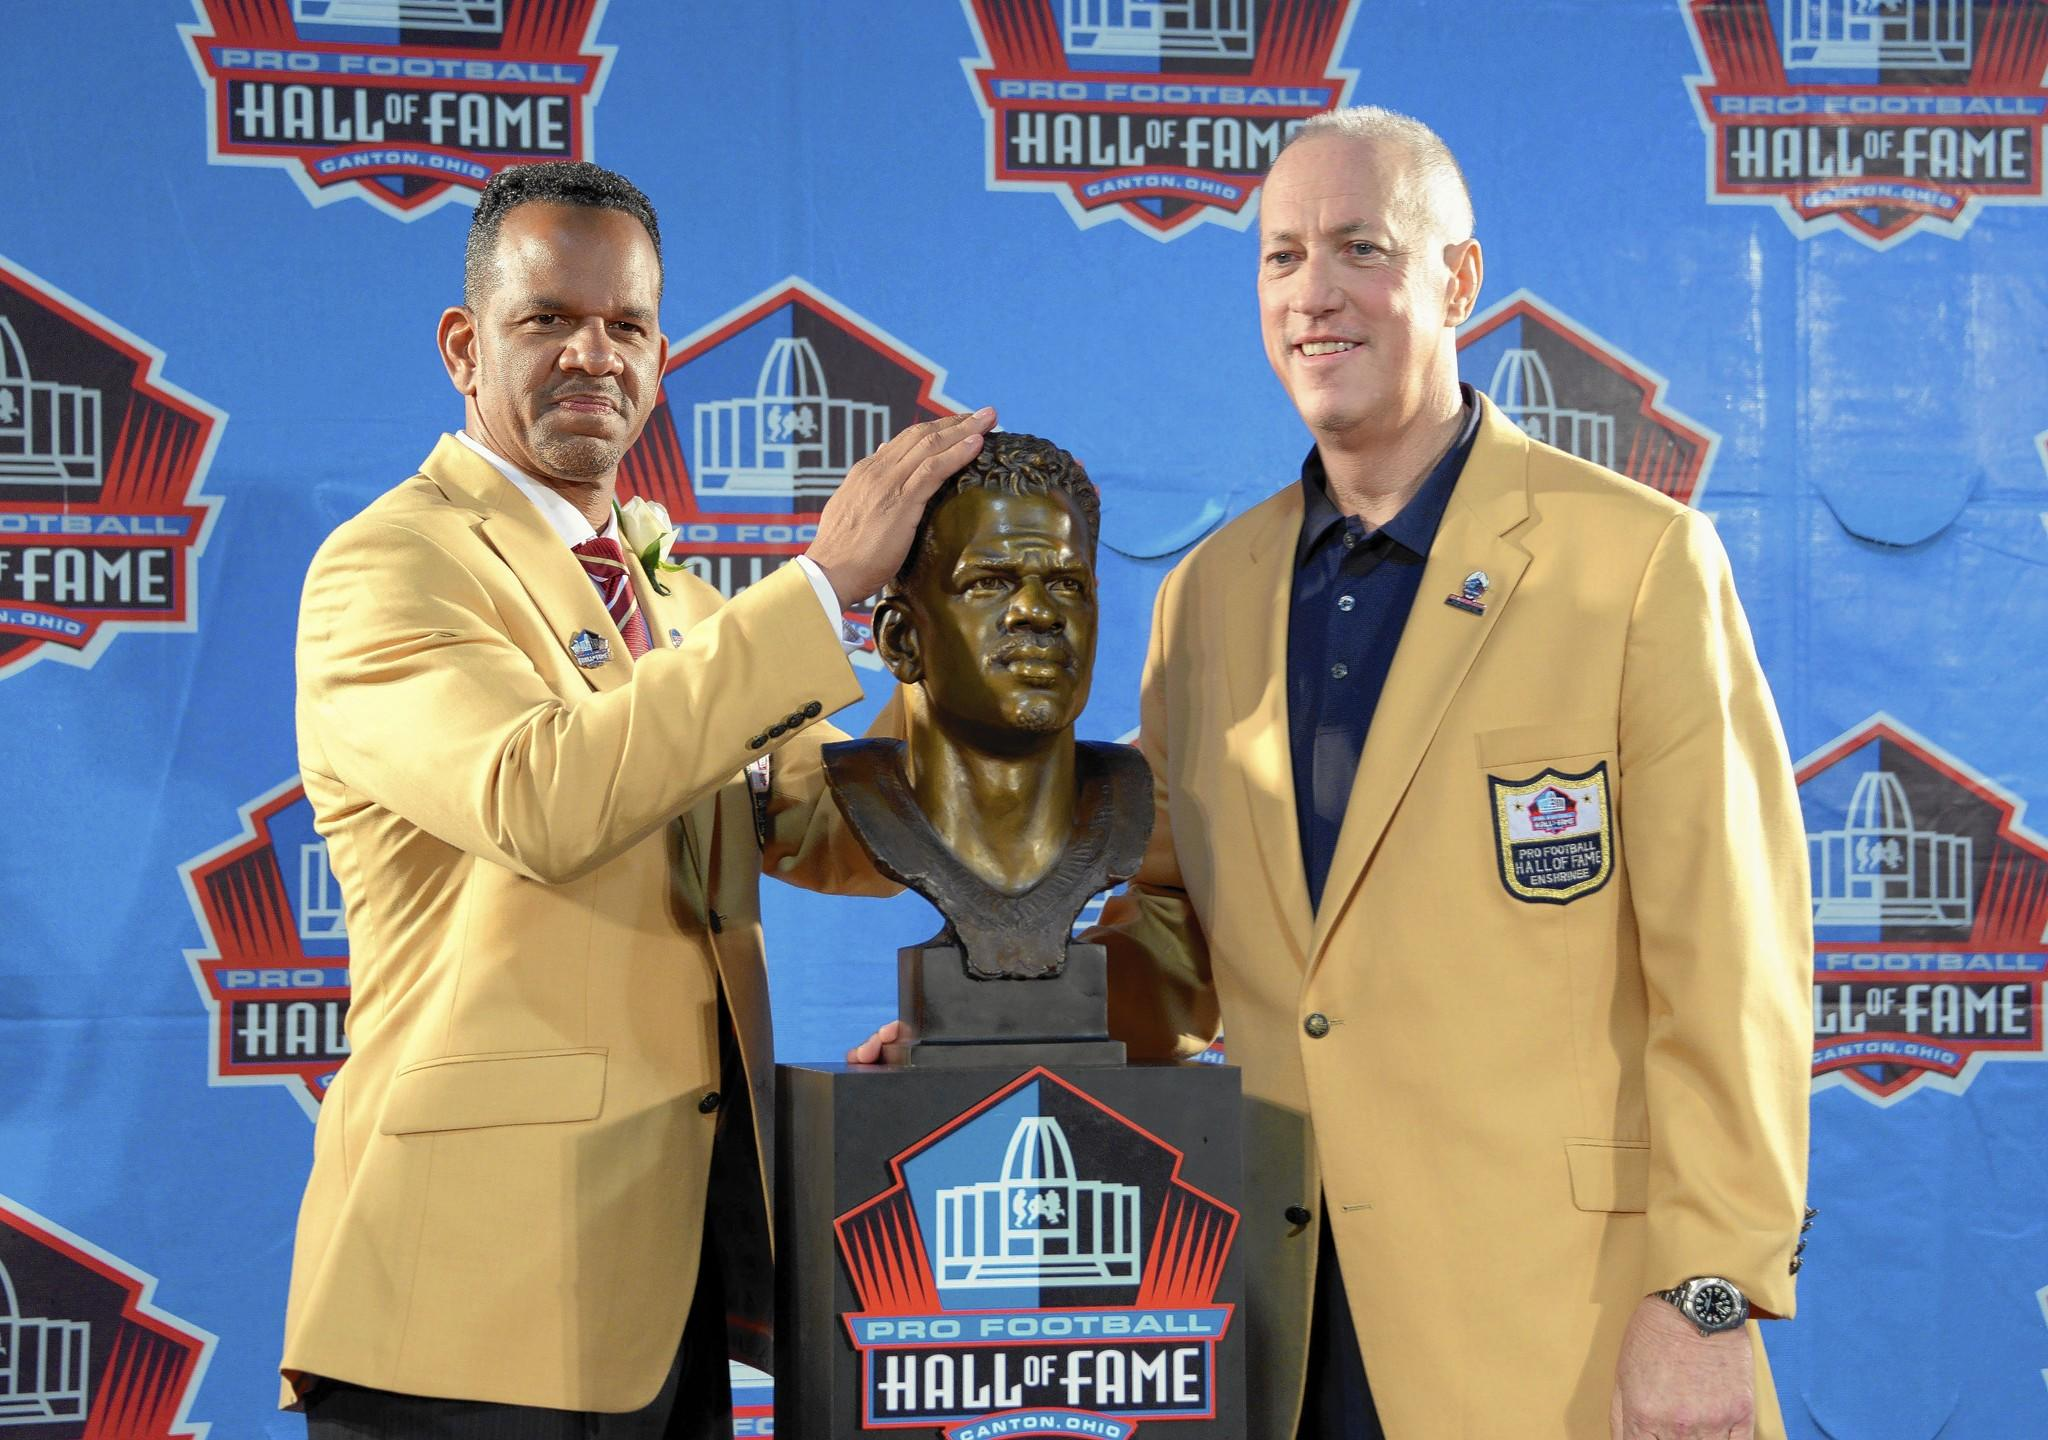 Allentown's Andre Reed (left) made special mention of his former quarterback, Jim Kelly. Reed called Kelly 'the toughest individual I've ever met in my life.'